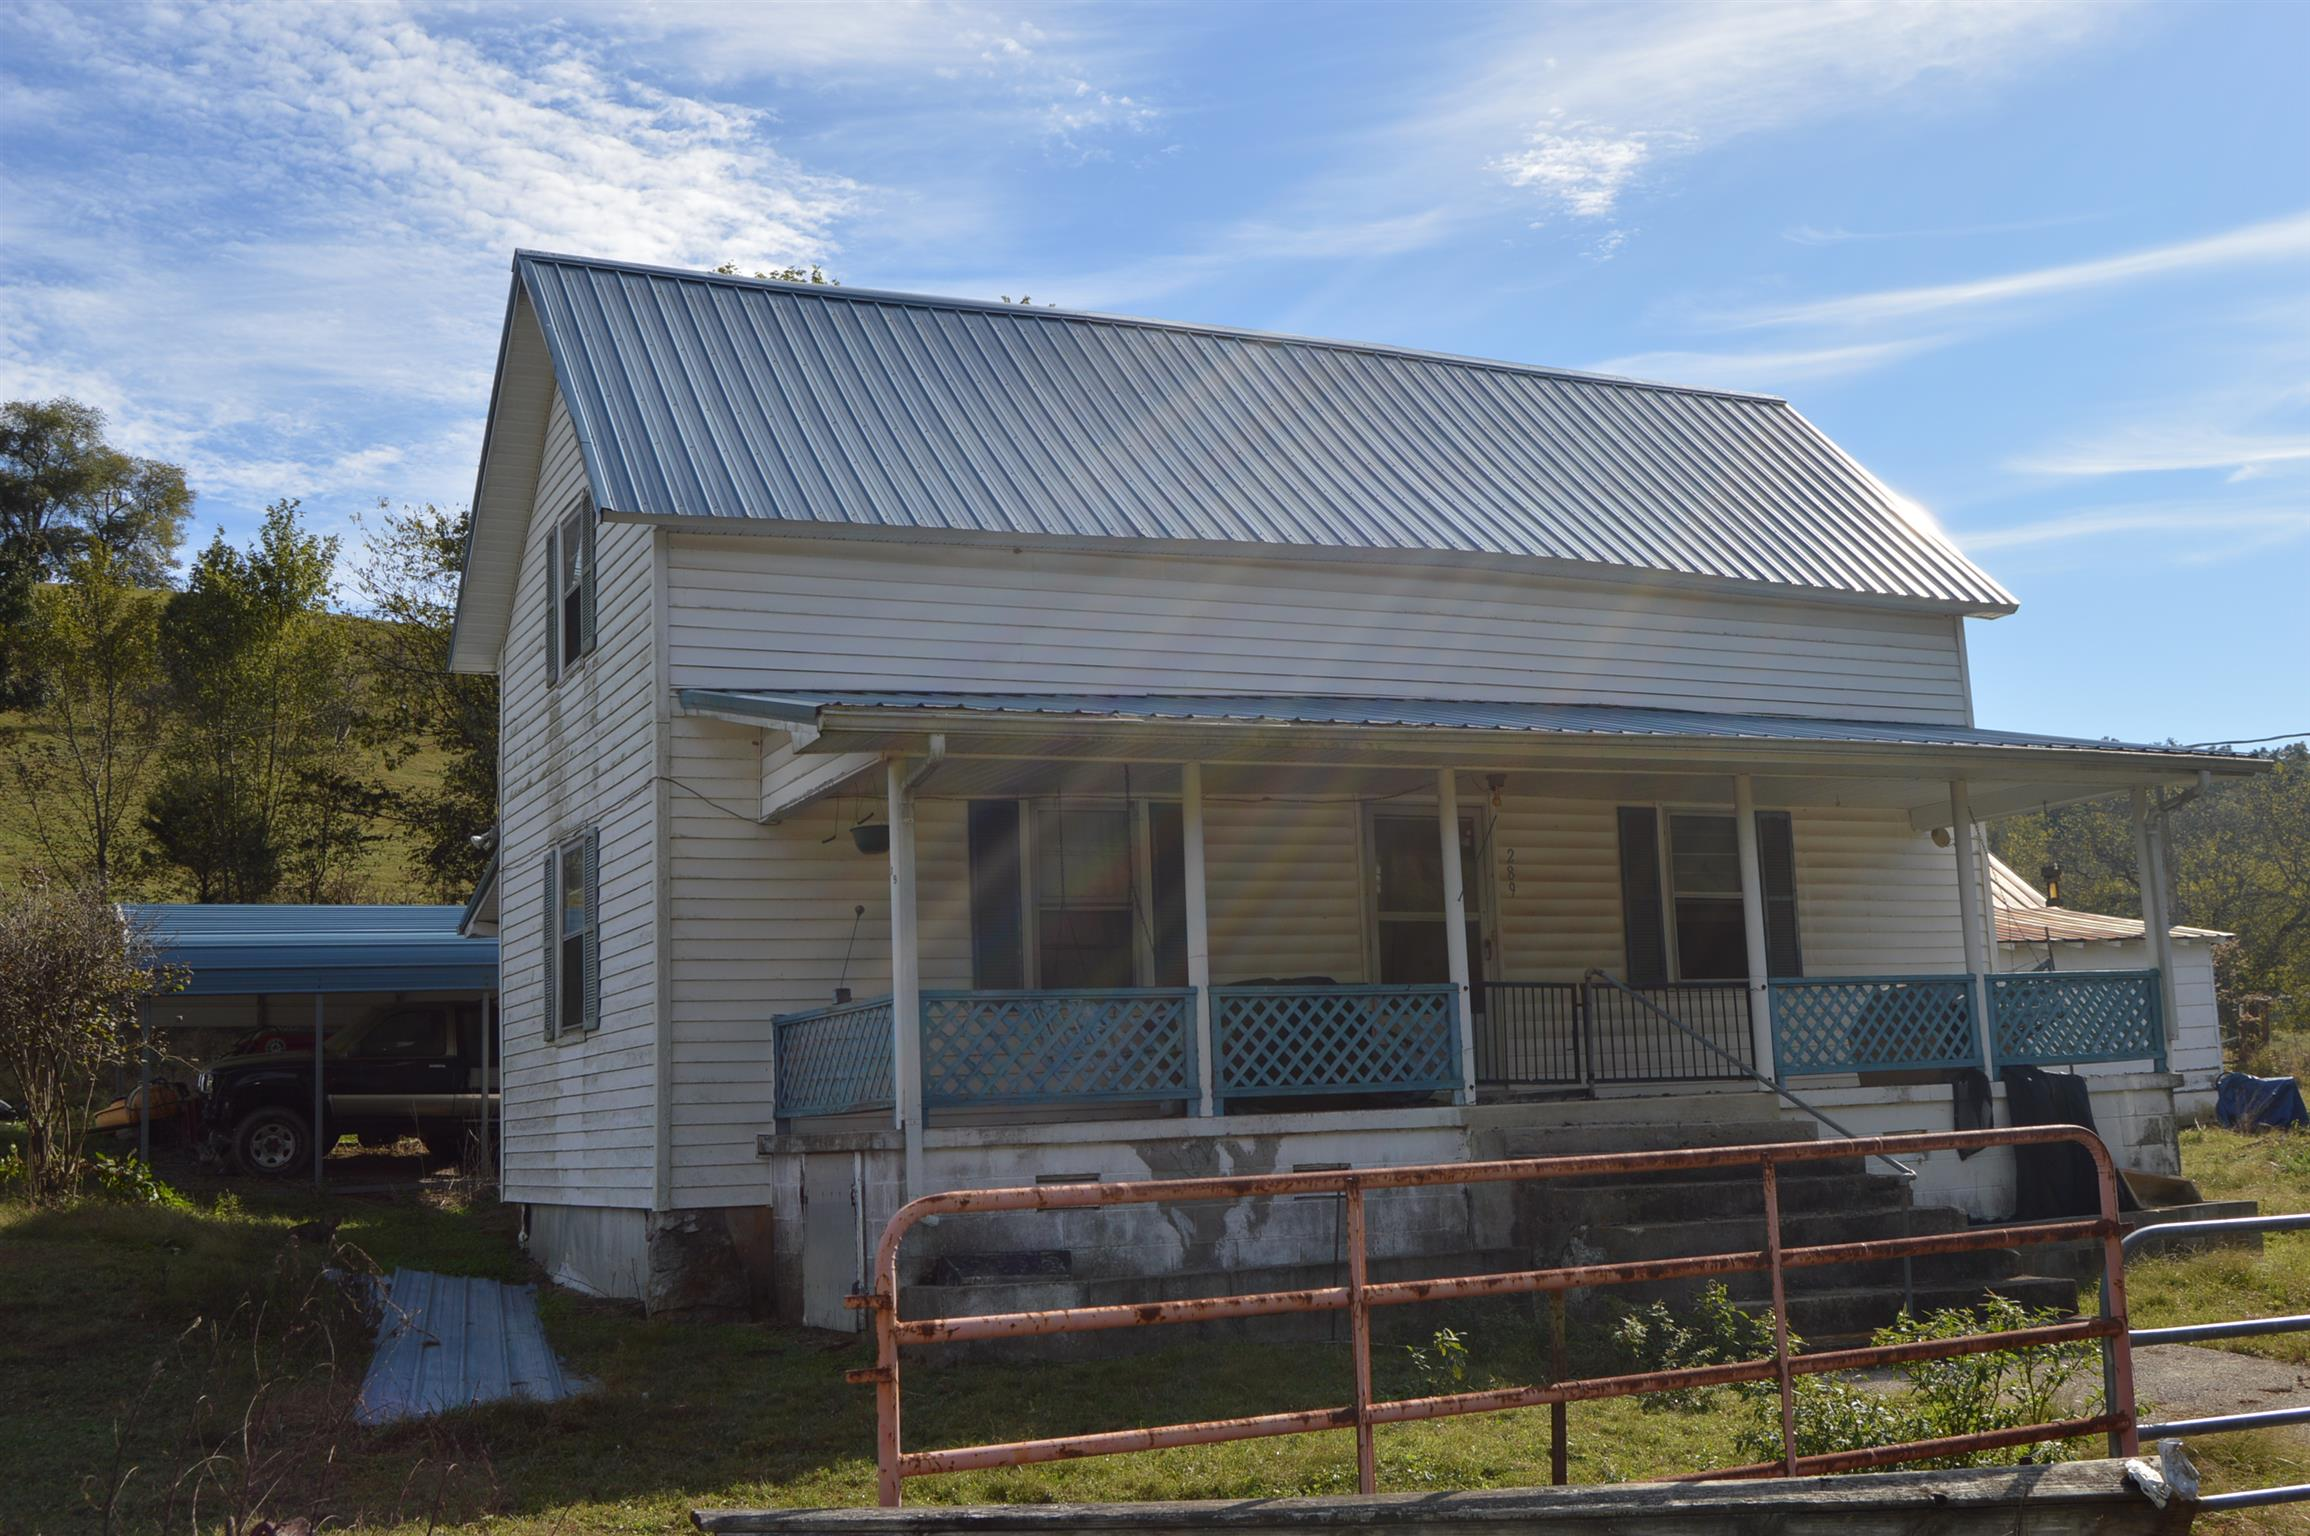 289 Charlie Todd Rd, Manchester, Tennessee